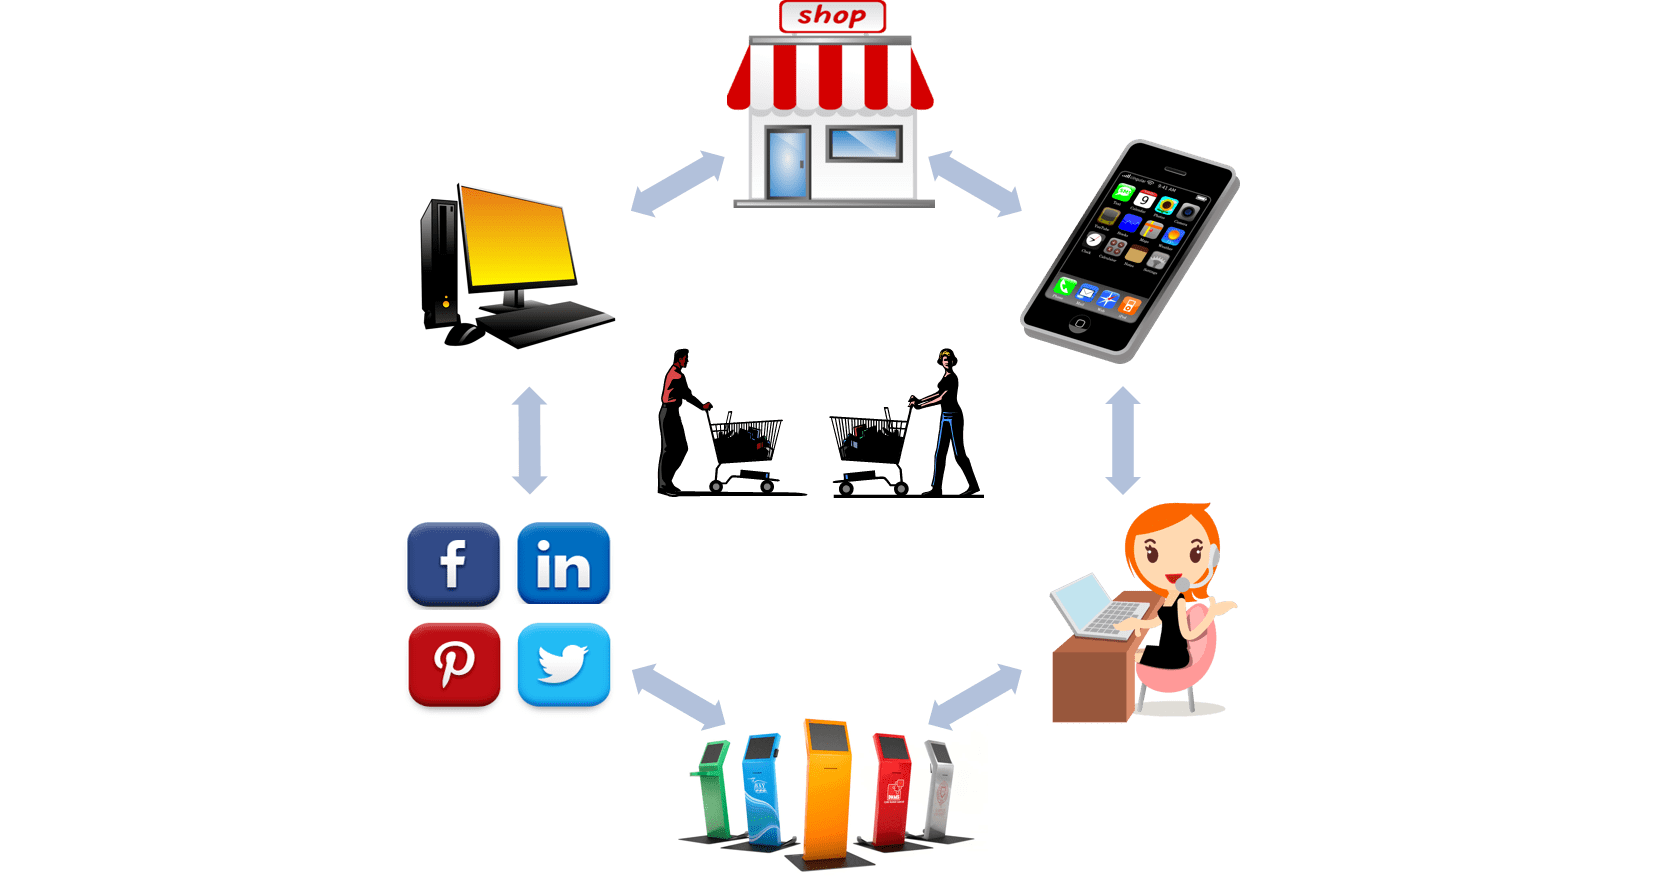 Omni channel order management. Electronics clipart electronic item